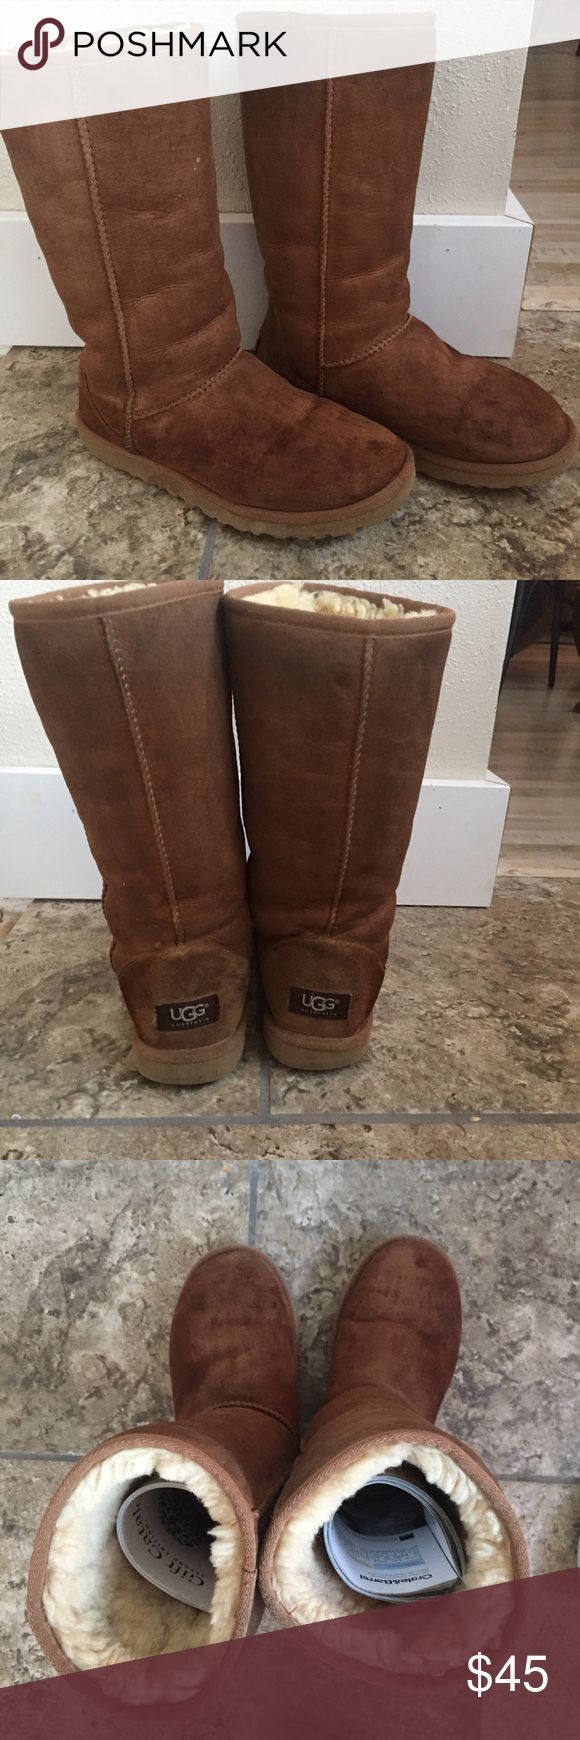 Tall Chestnut Uggs Tall chestnut Ugg boots. Small signs of wear on the bottom heels and very small spots on the top by the toes. In overall really great condition!!! Size 6, but could fit up to 7-7.5! UGG Shoes Winter & Rain Boots